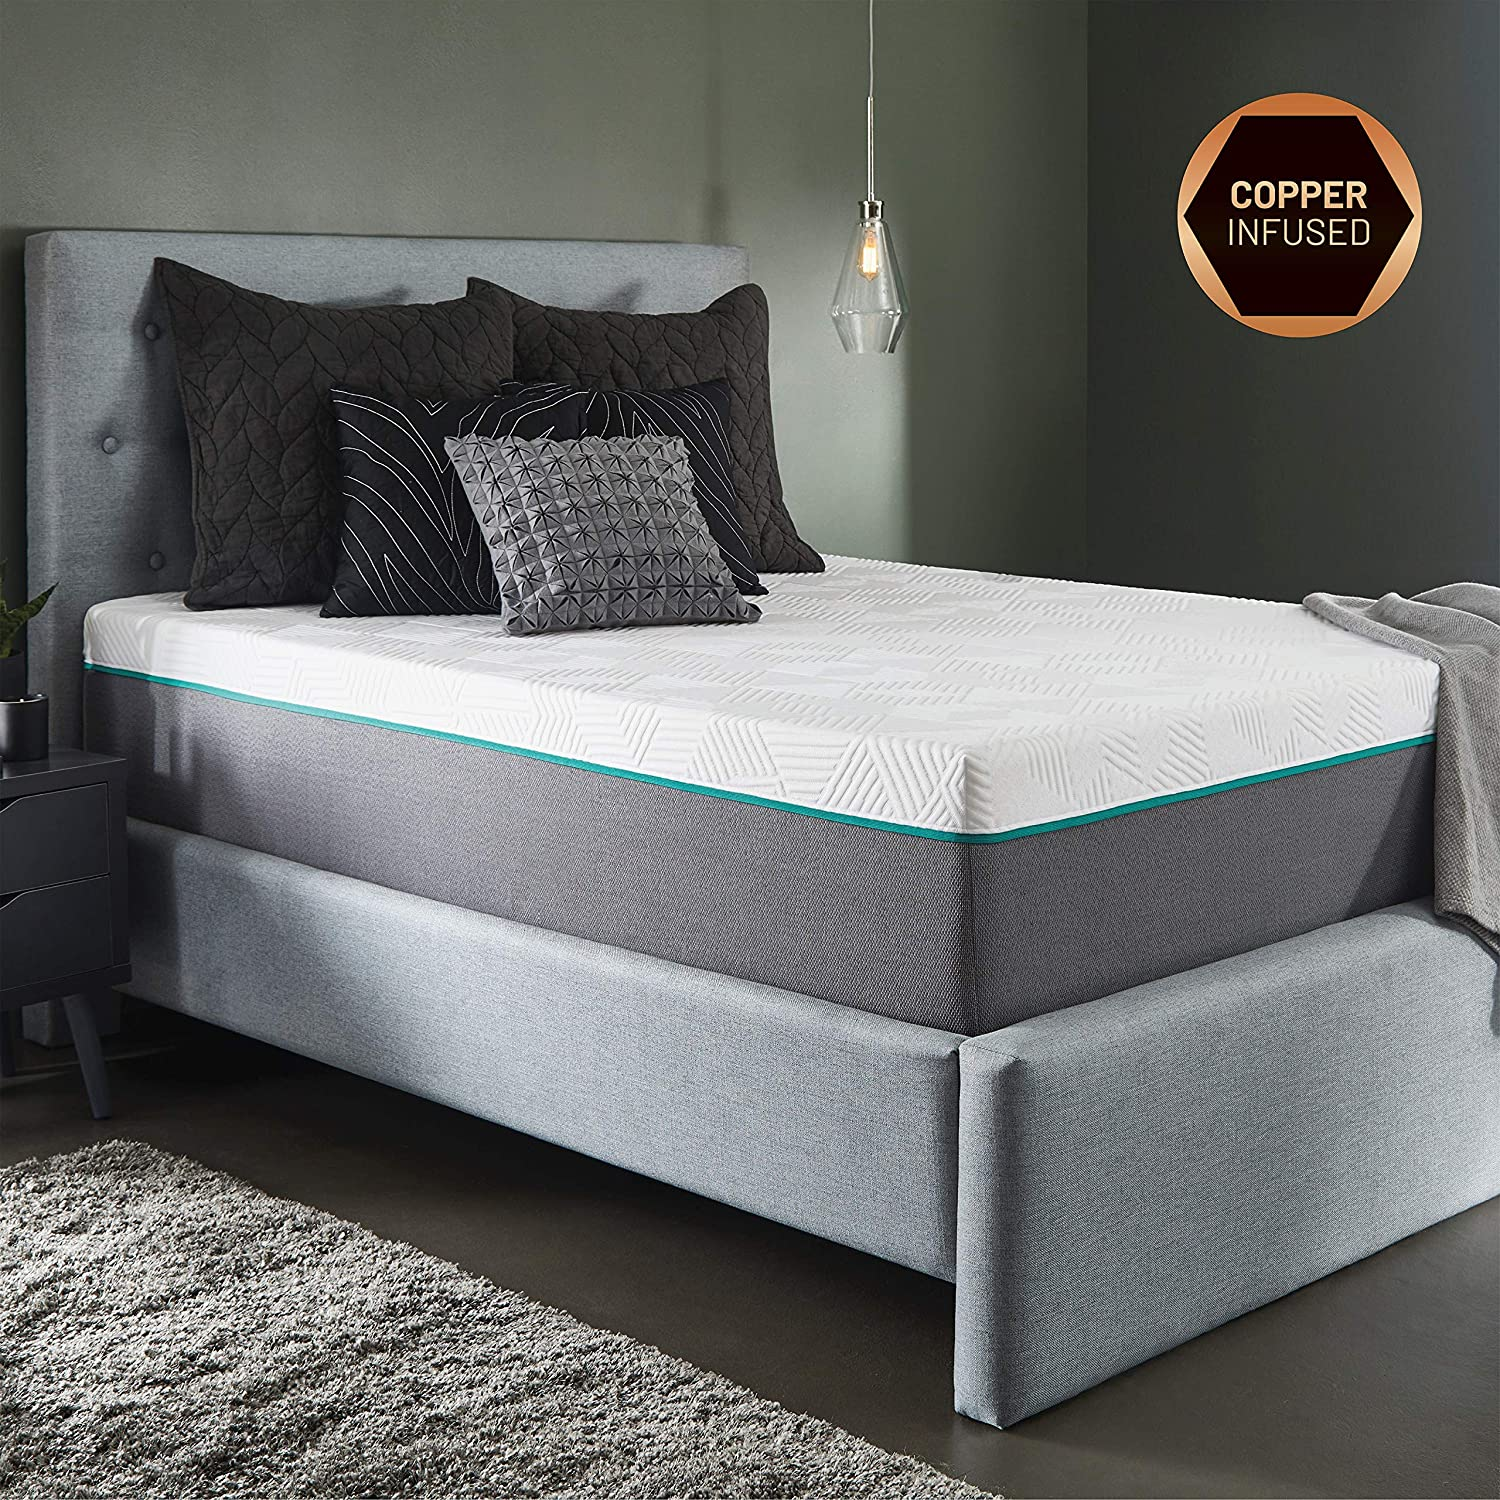 10-Inch Hybrid Mattress, Copper & Gel Infused Memory Foam Cool Sleep